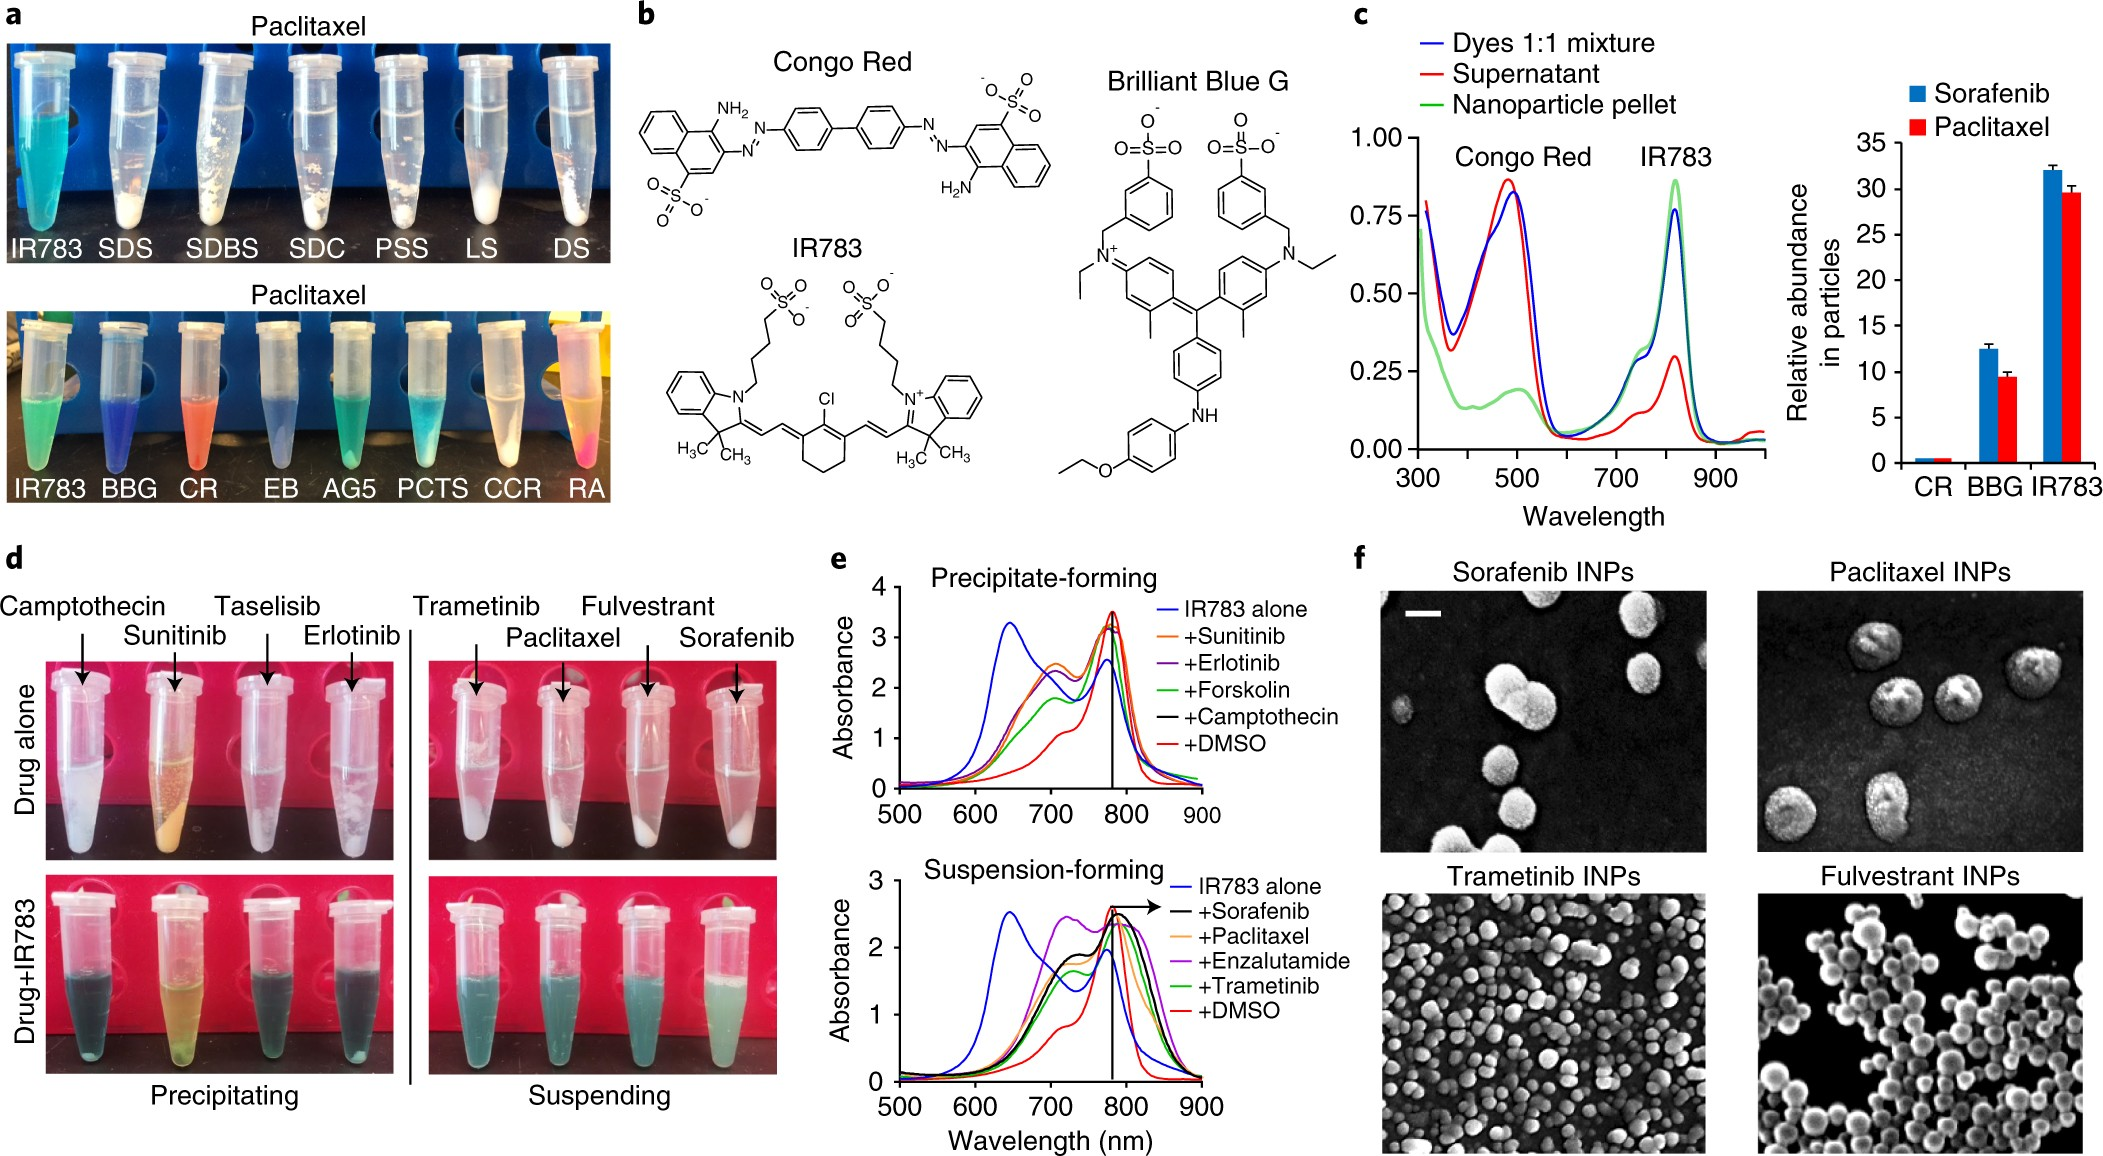 Quantitative Self Assembly Prediction Yields Targeted Nanomedicines Molecular In Nanotechnology Nature Materials